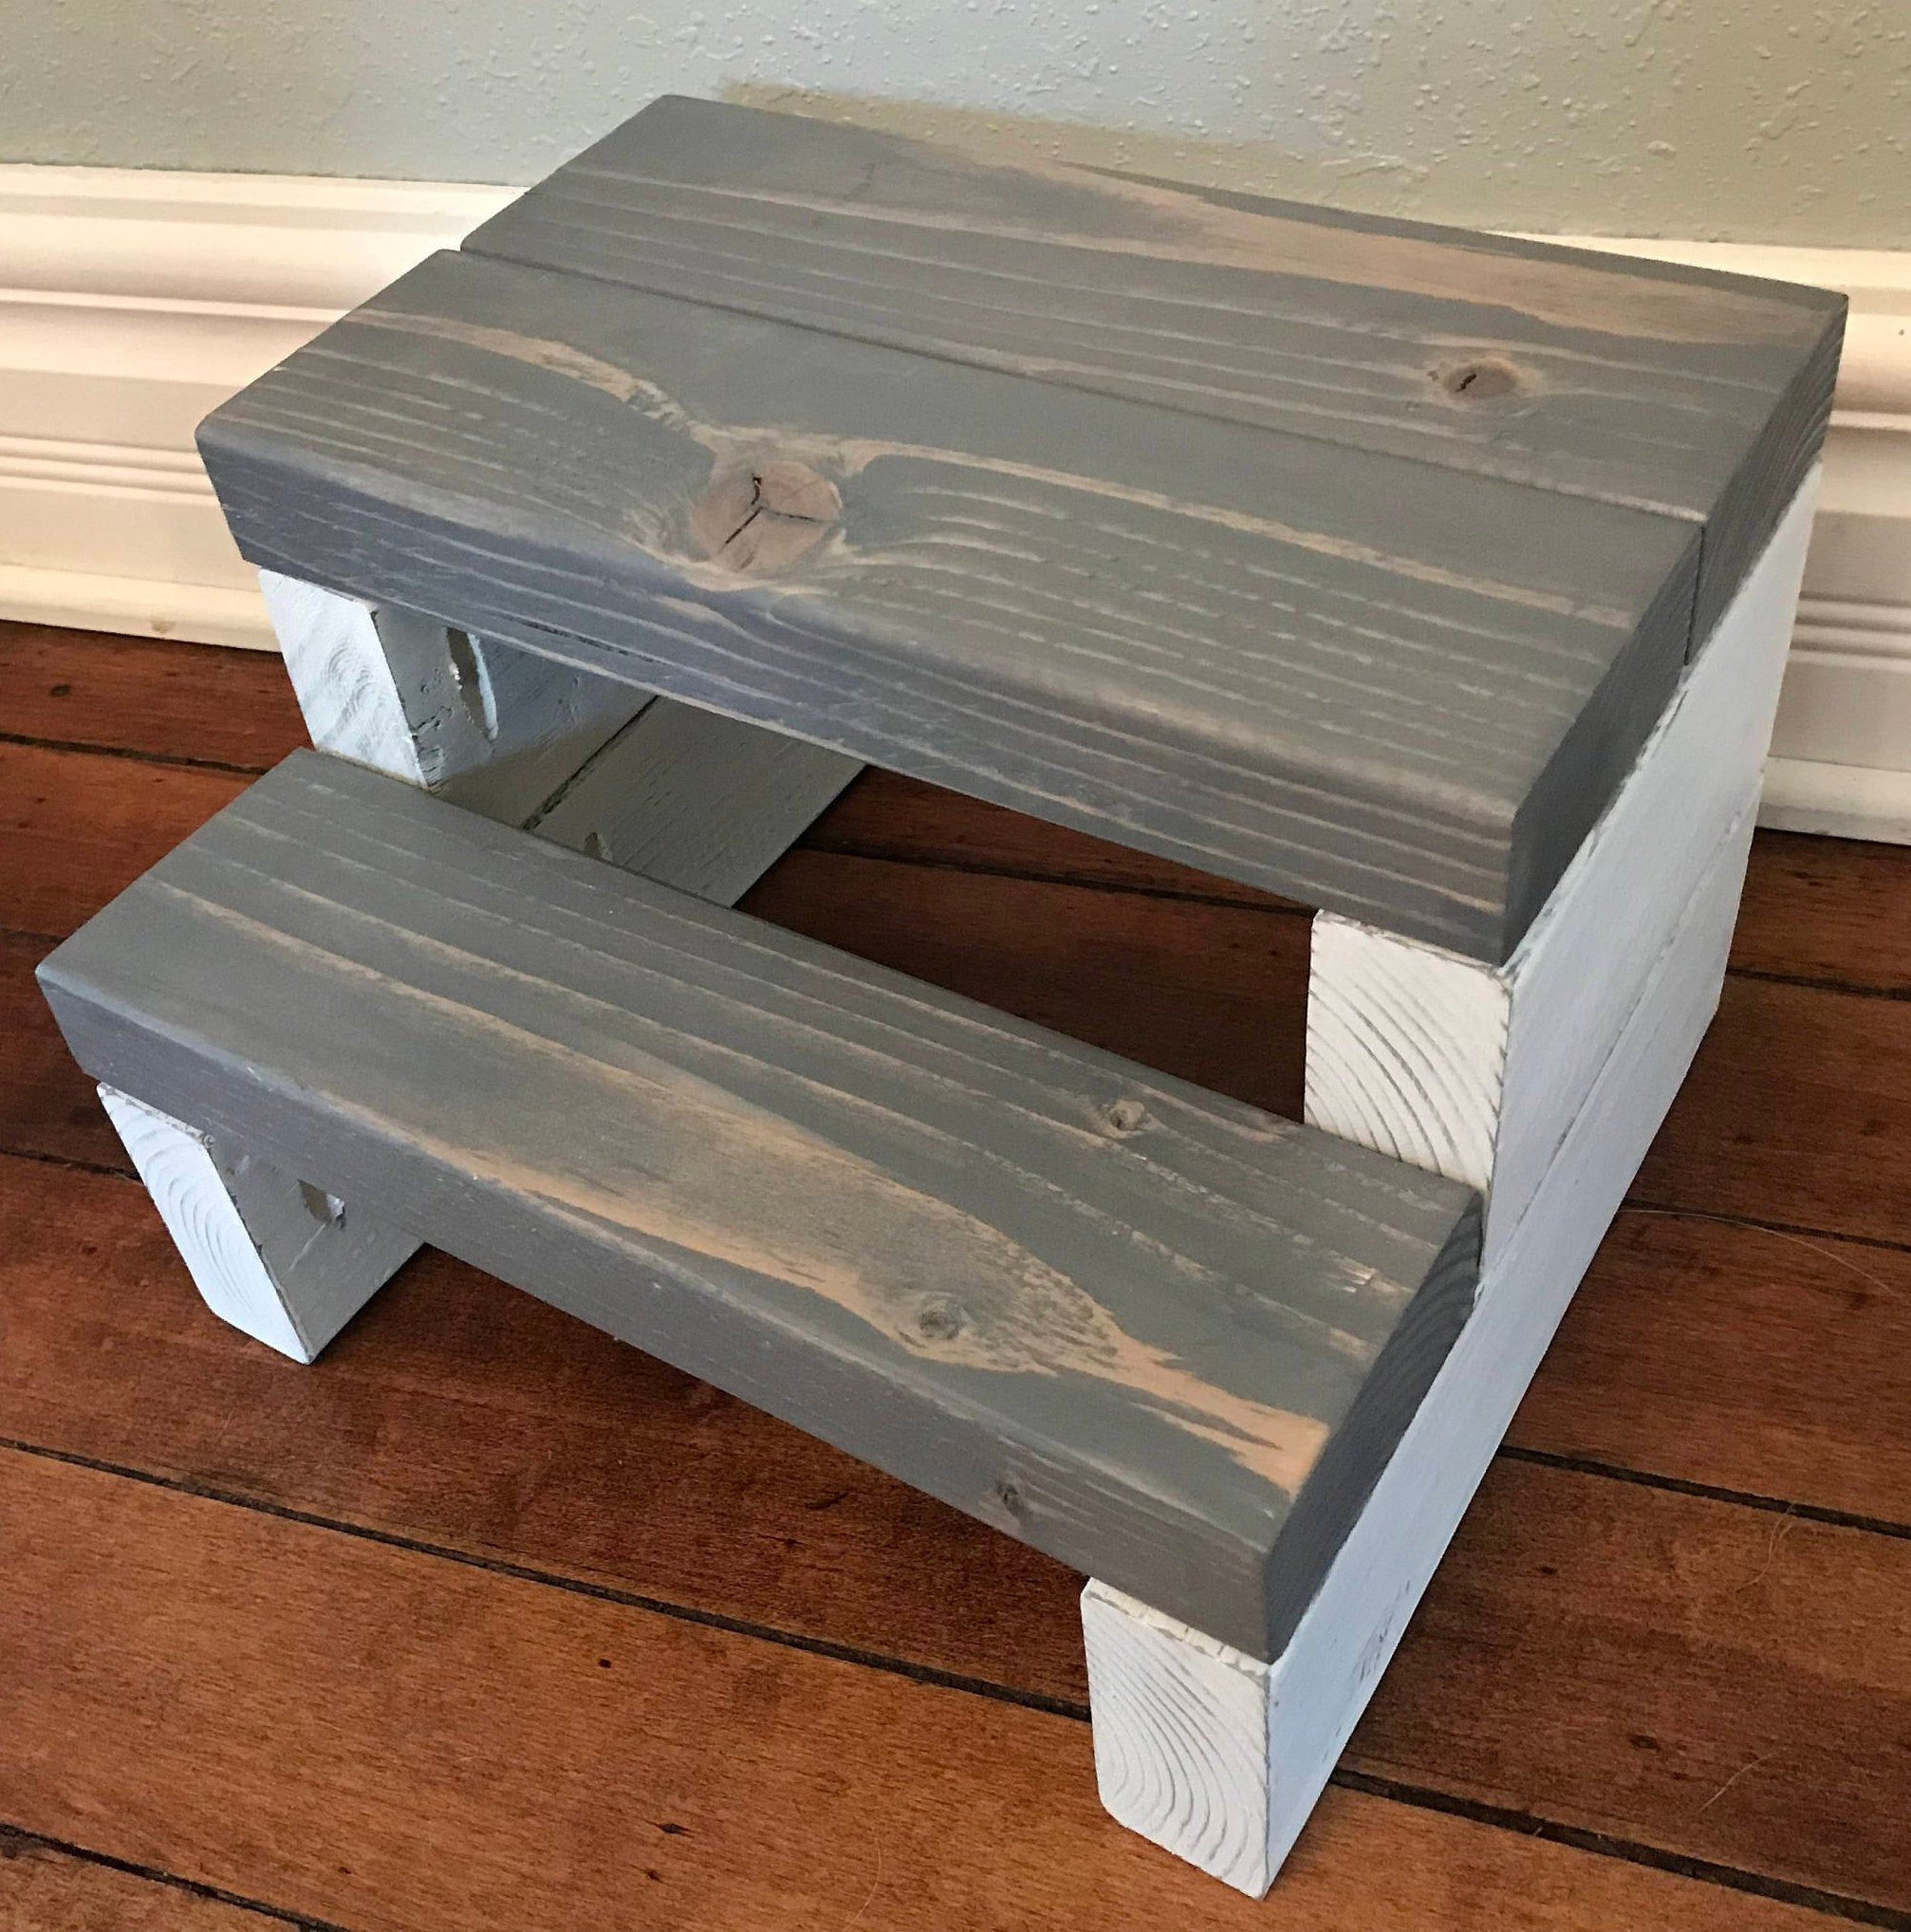 Pin On Scrap Wood Projects